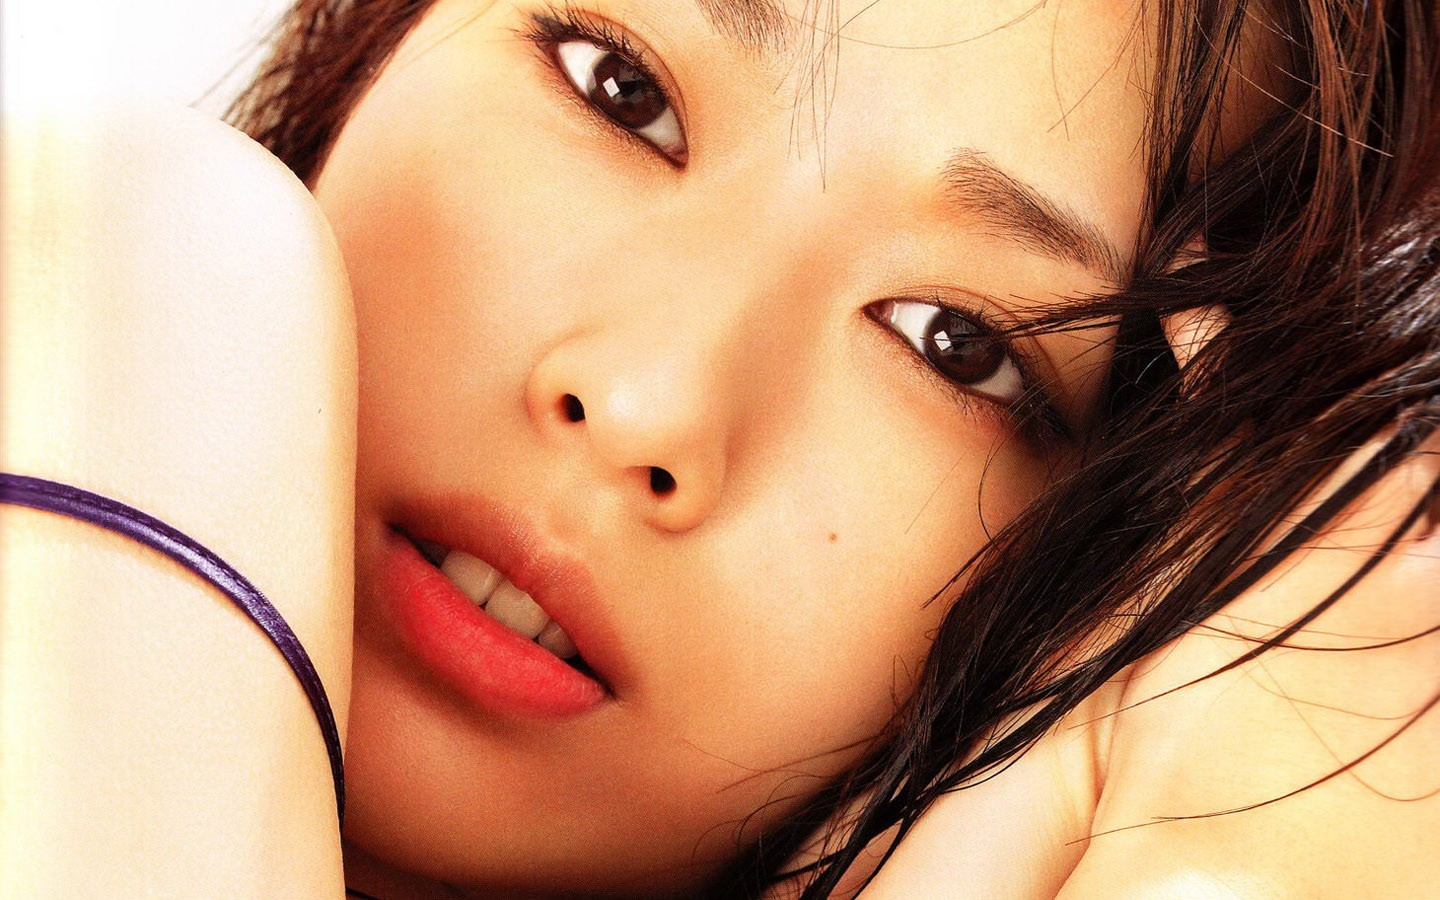 woman Celebrity asians HD Wallpaper